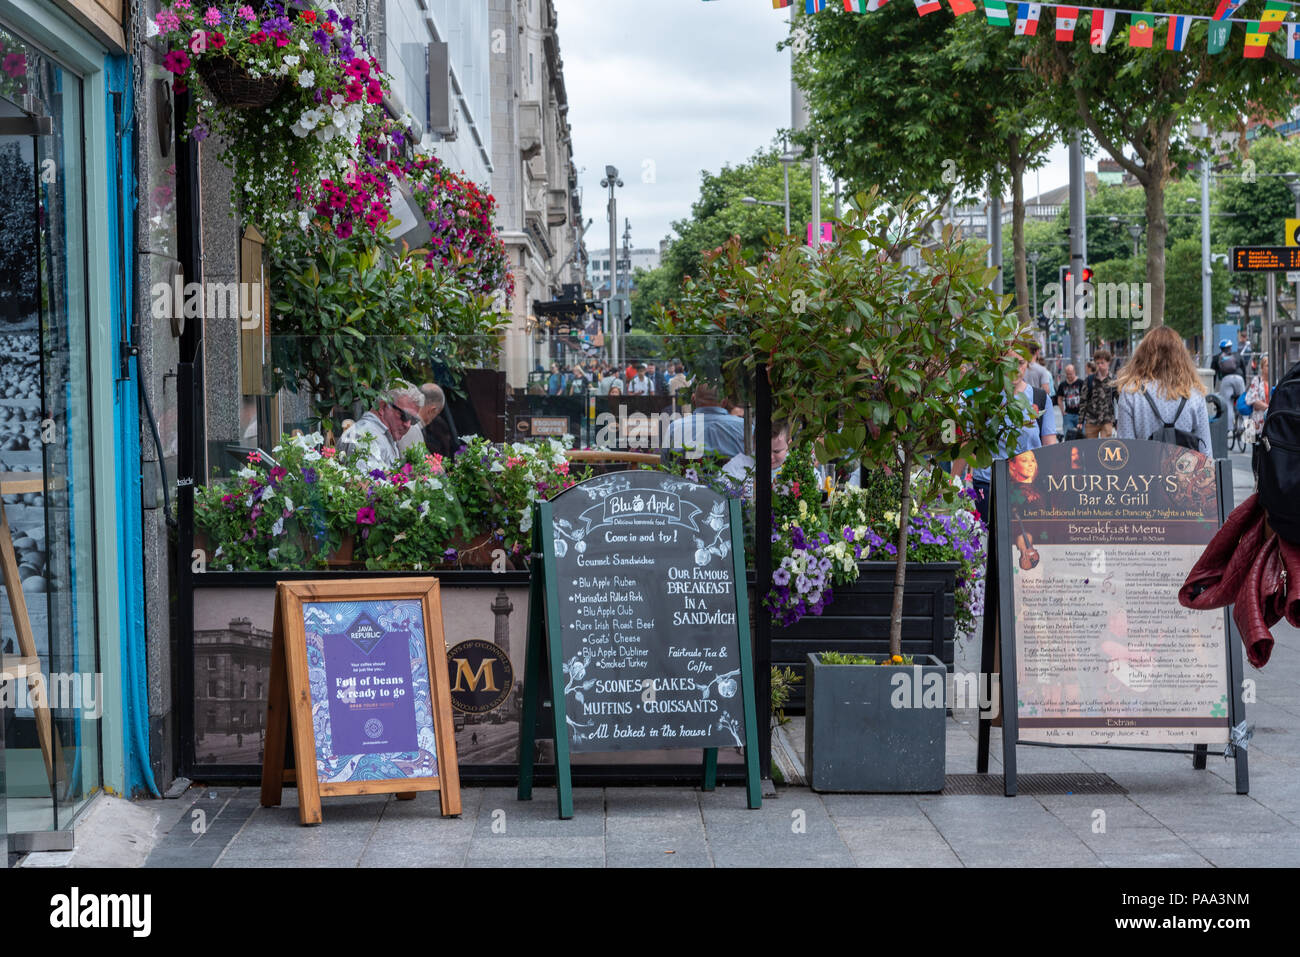 Patrons are seated at an outdoor Bar & Grill in Dublin, surrounded by flowers as pedestrians pass by. - Stock Image